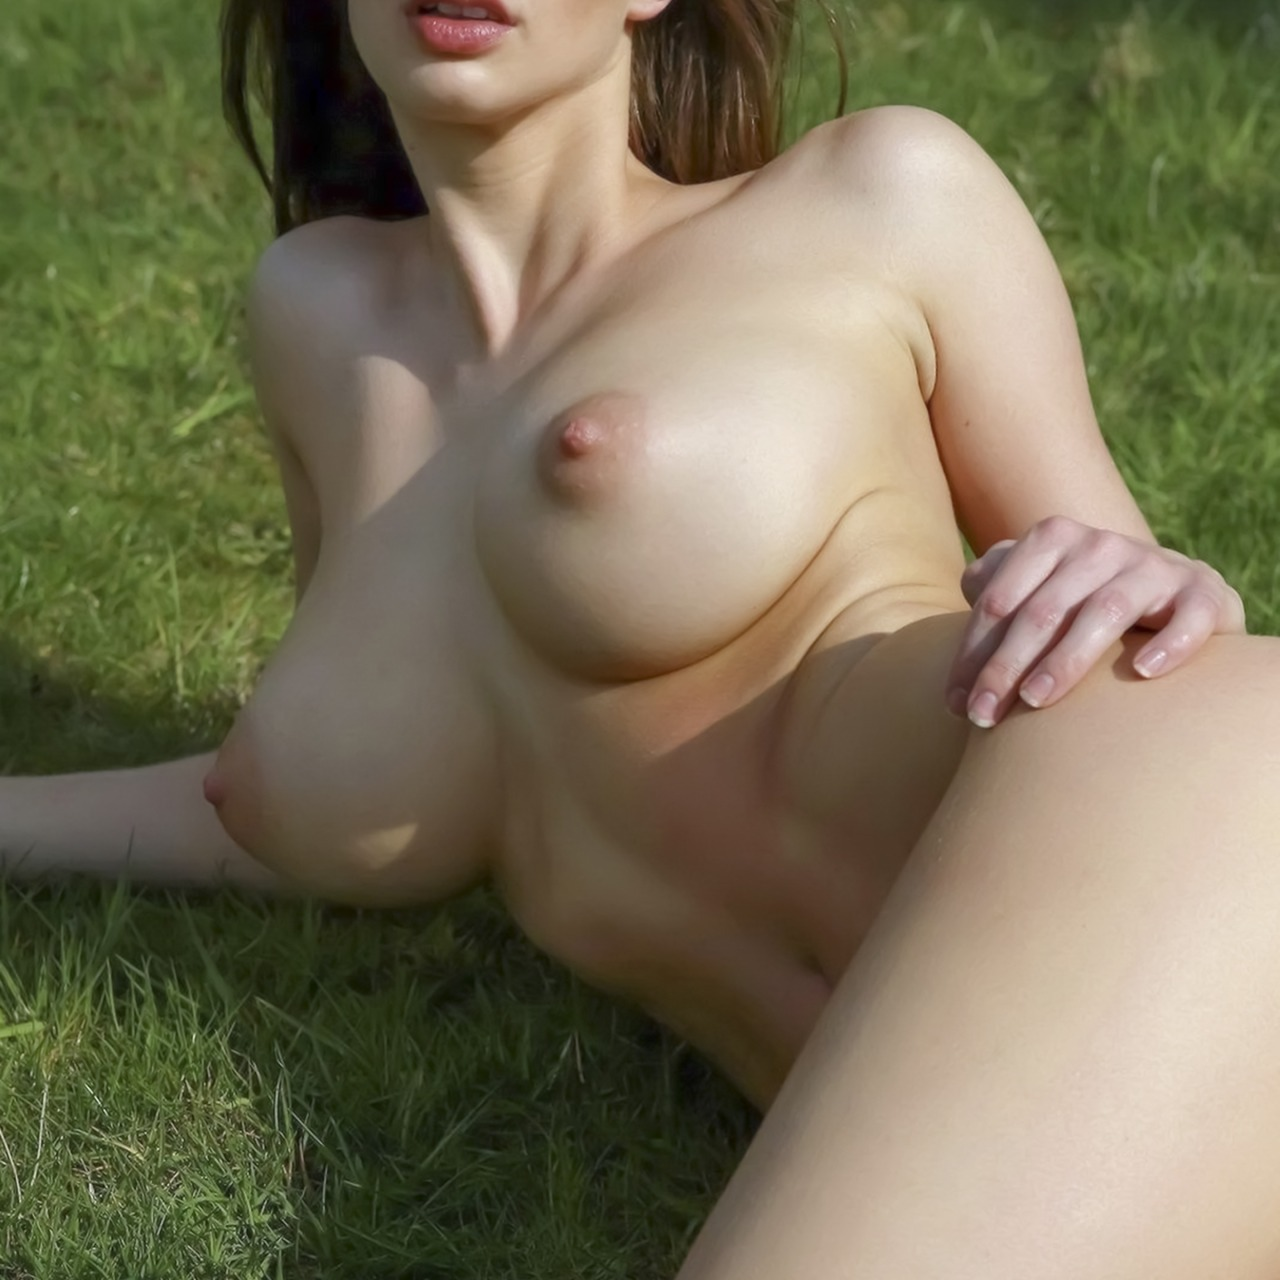 xxx video first time seel open hot porn watch and download xxx